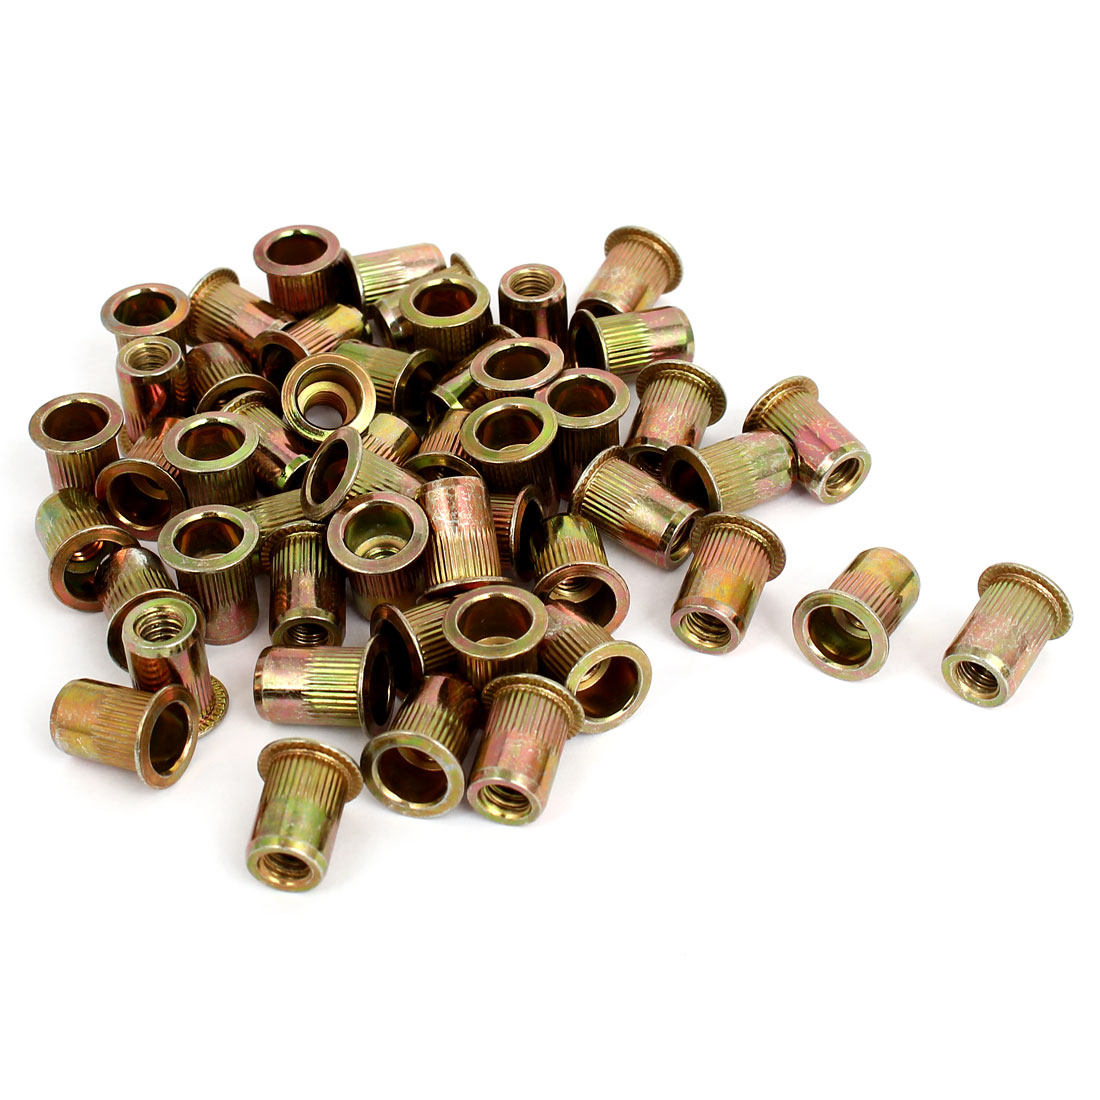 "1/4"" Thread 15mm Long Rivet Nut Insert Nutsert 50pcs"